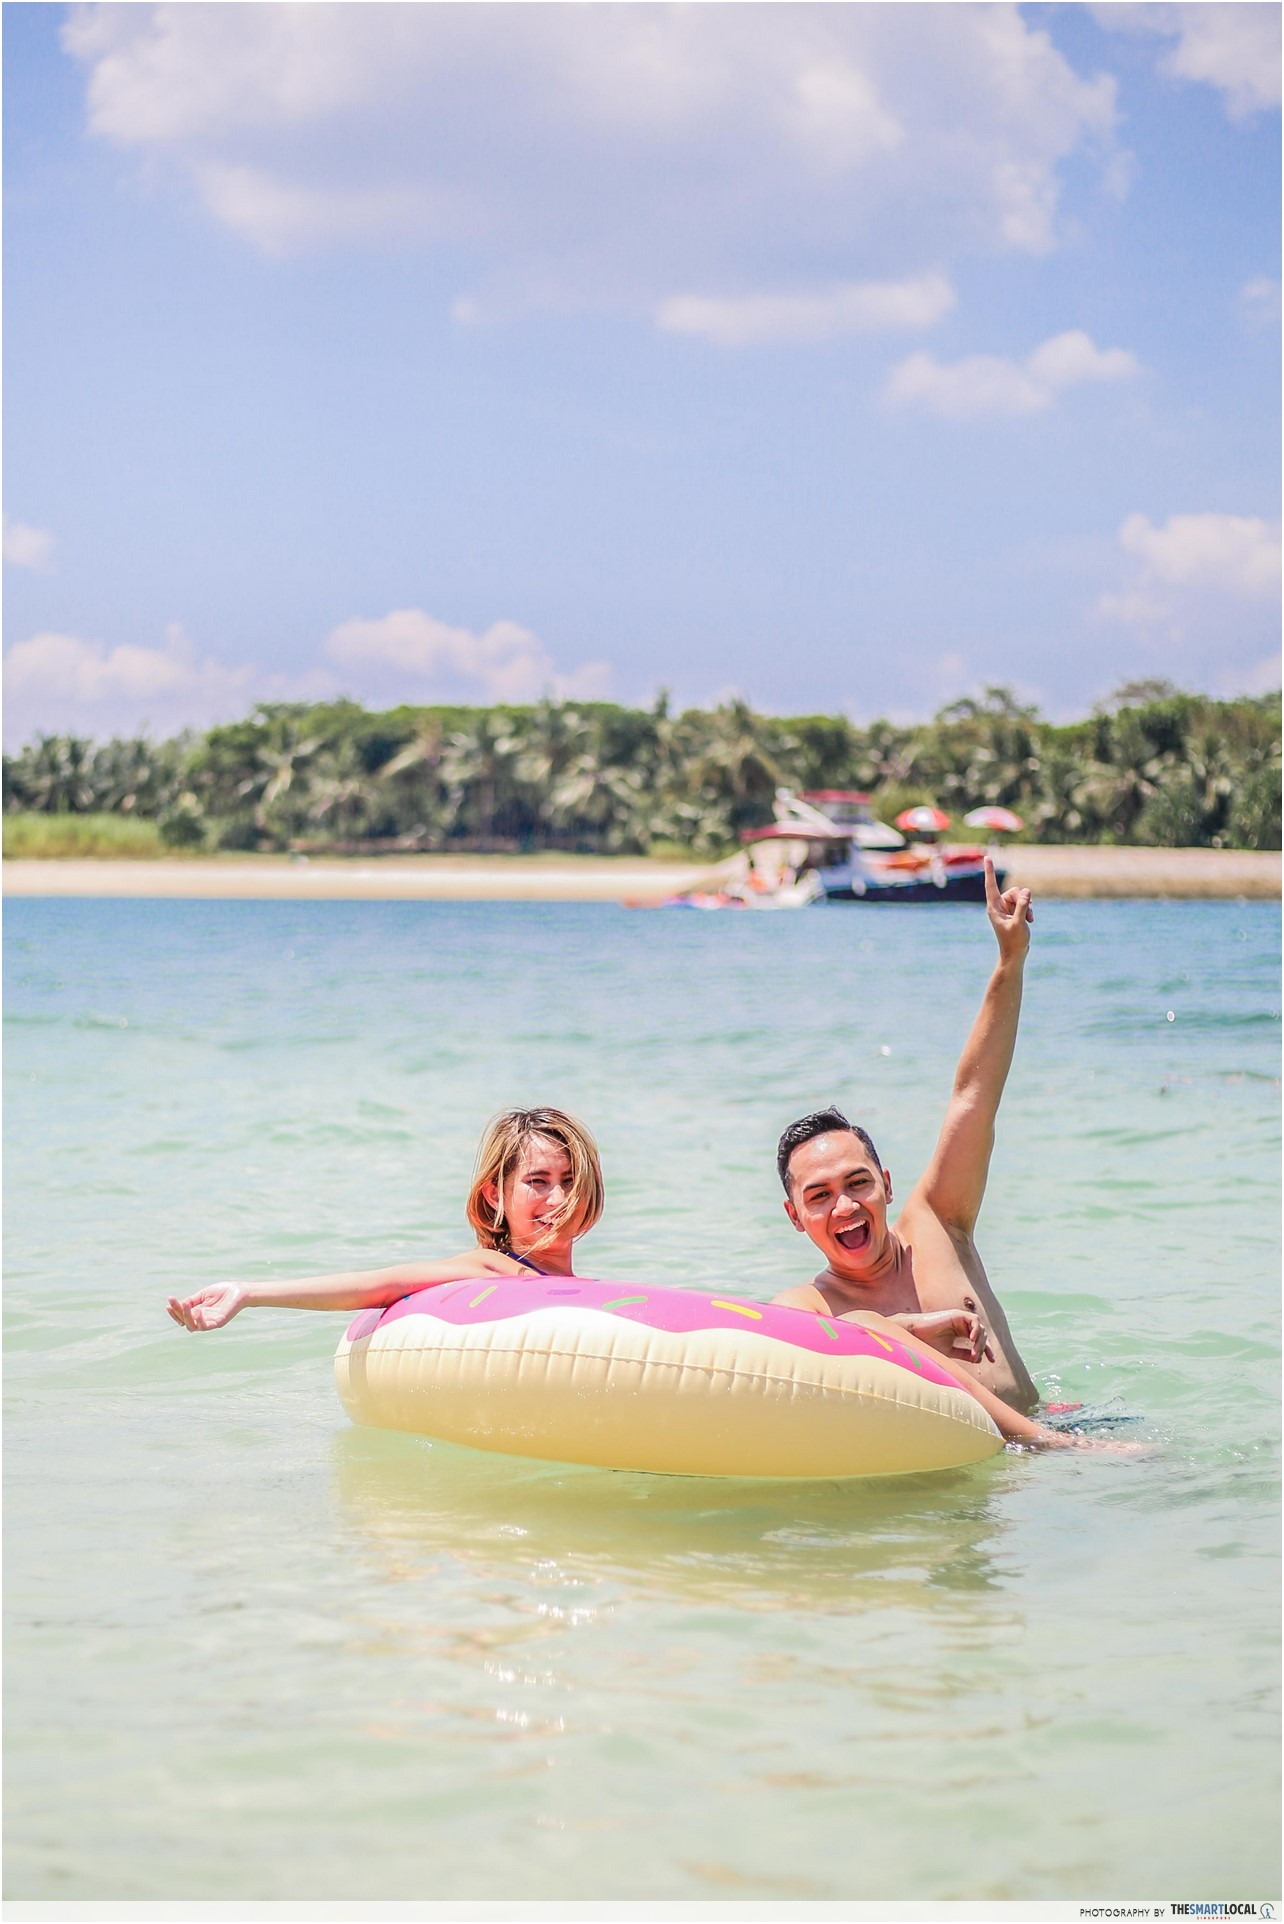 fauzi and beatrice having fun with their float on lazarus island beach